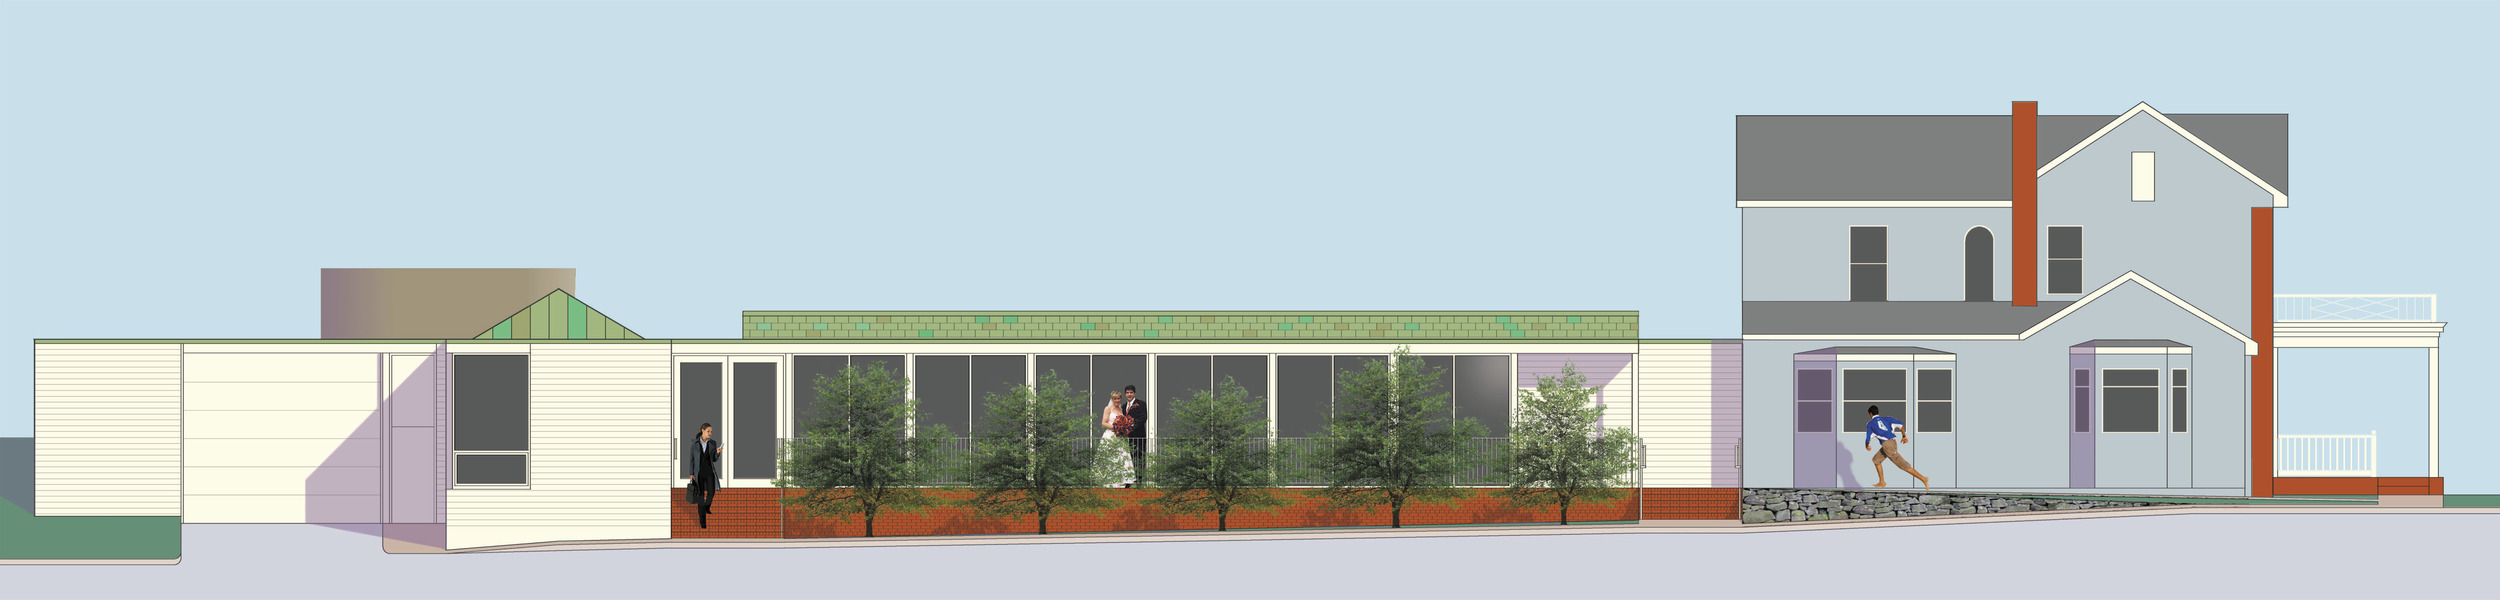 elevation rendering copy.jpg